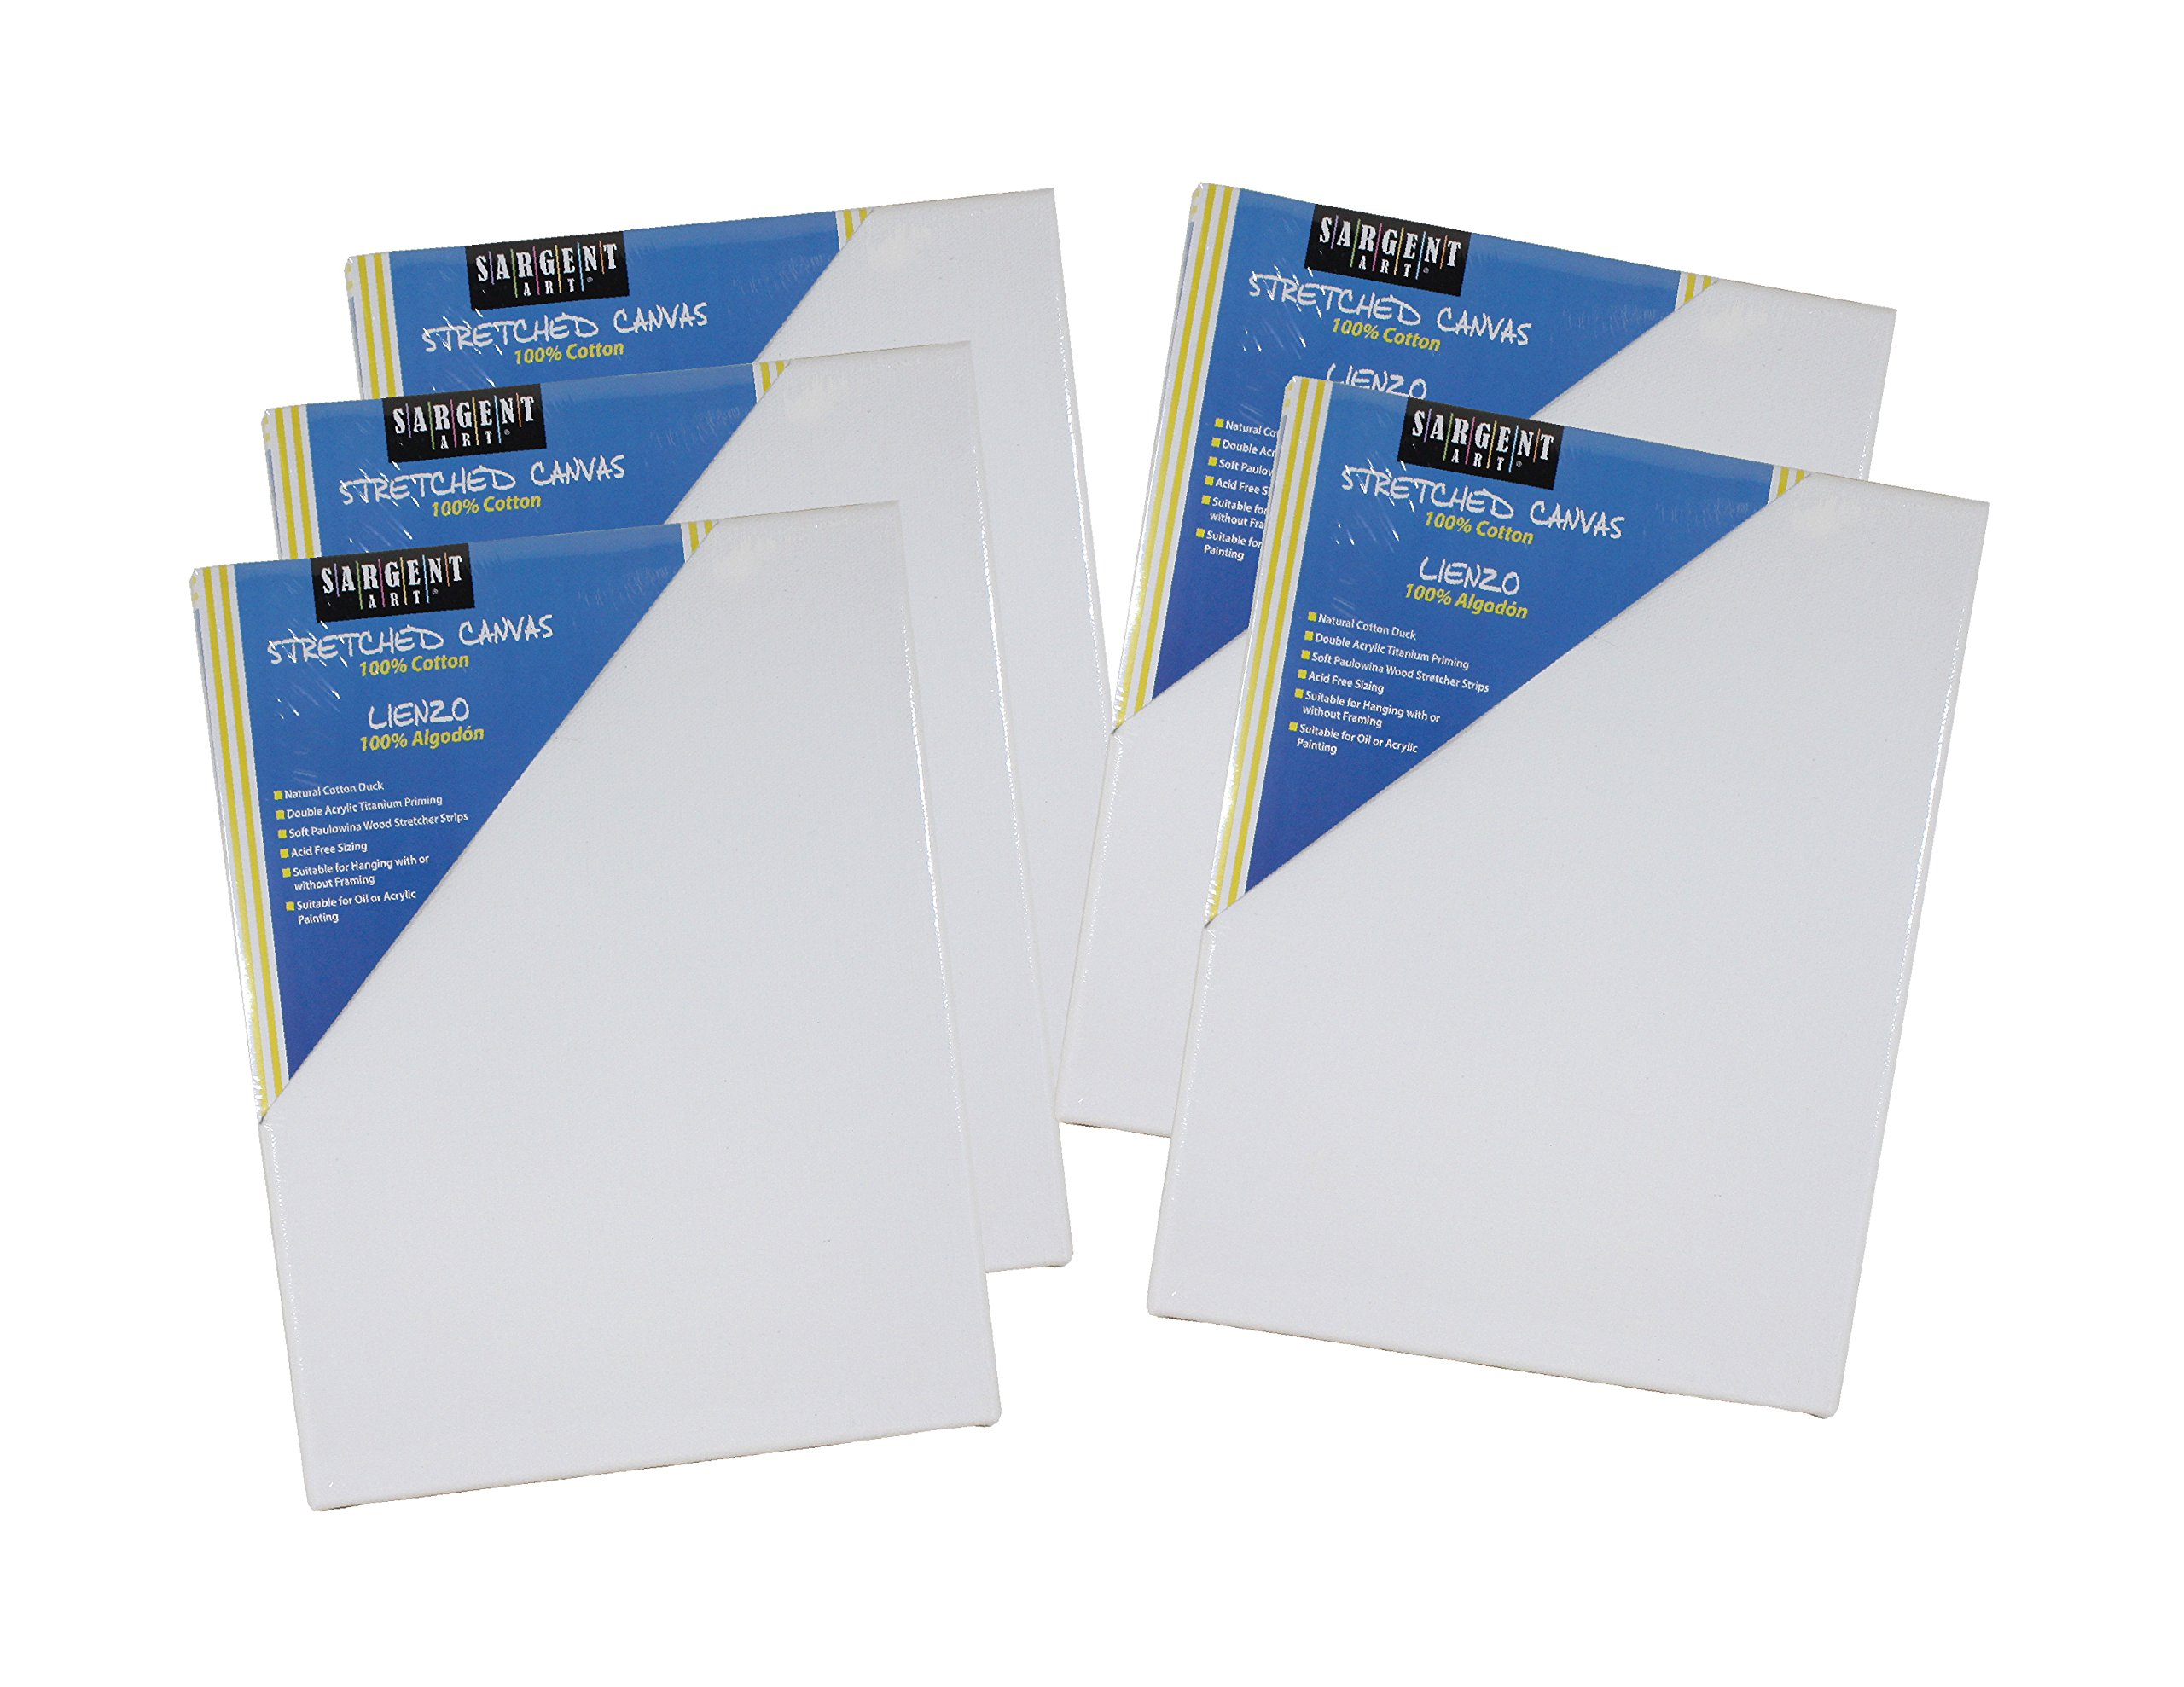 Sargent Art 16x20 inch Value Pack 16 x 20 Inch Stretched Canvas Pack of 5, 5 Piece by Sargent Art